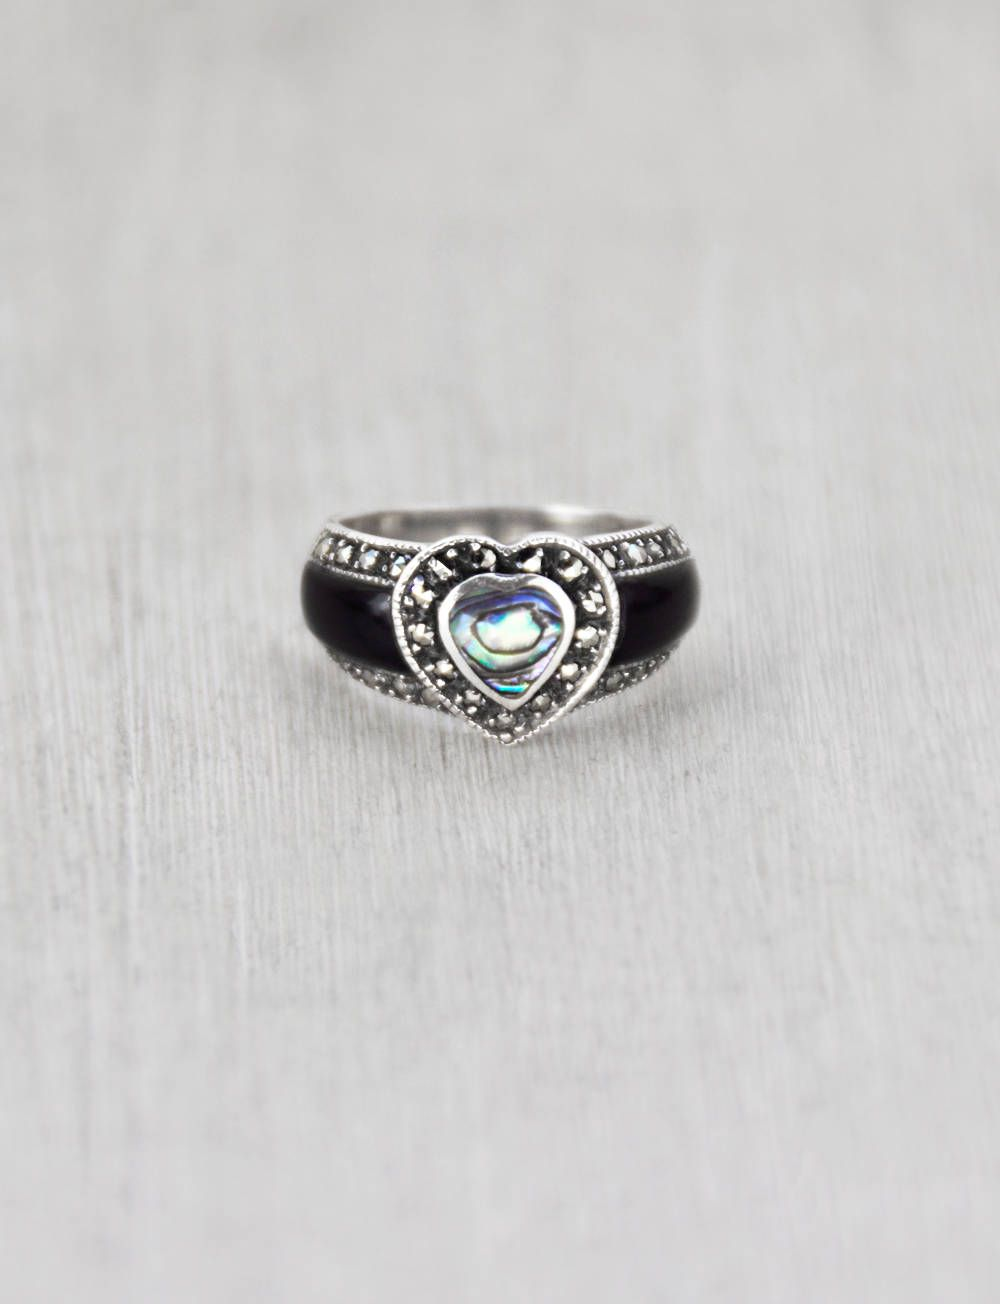 Abalone /& Marcasite Ladies Ring Sterling Silver 925 Onyx